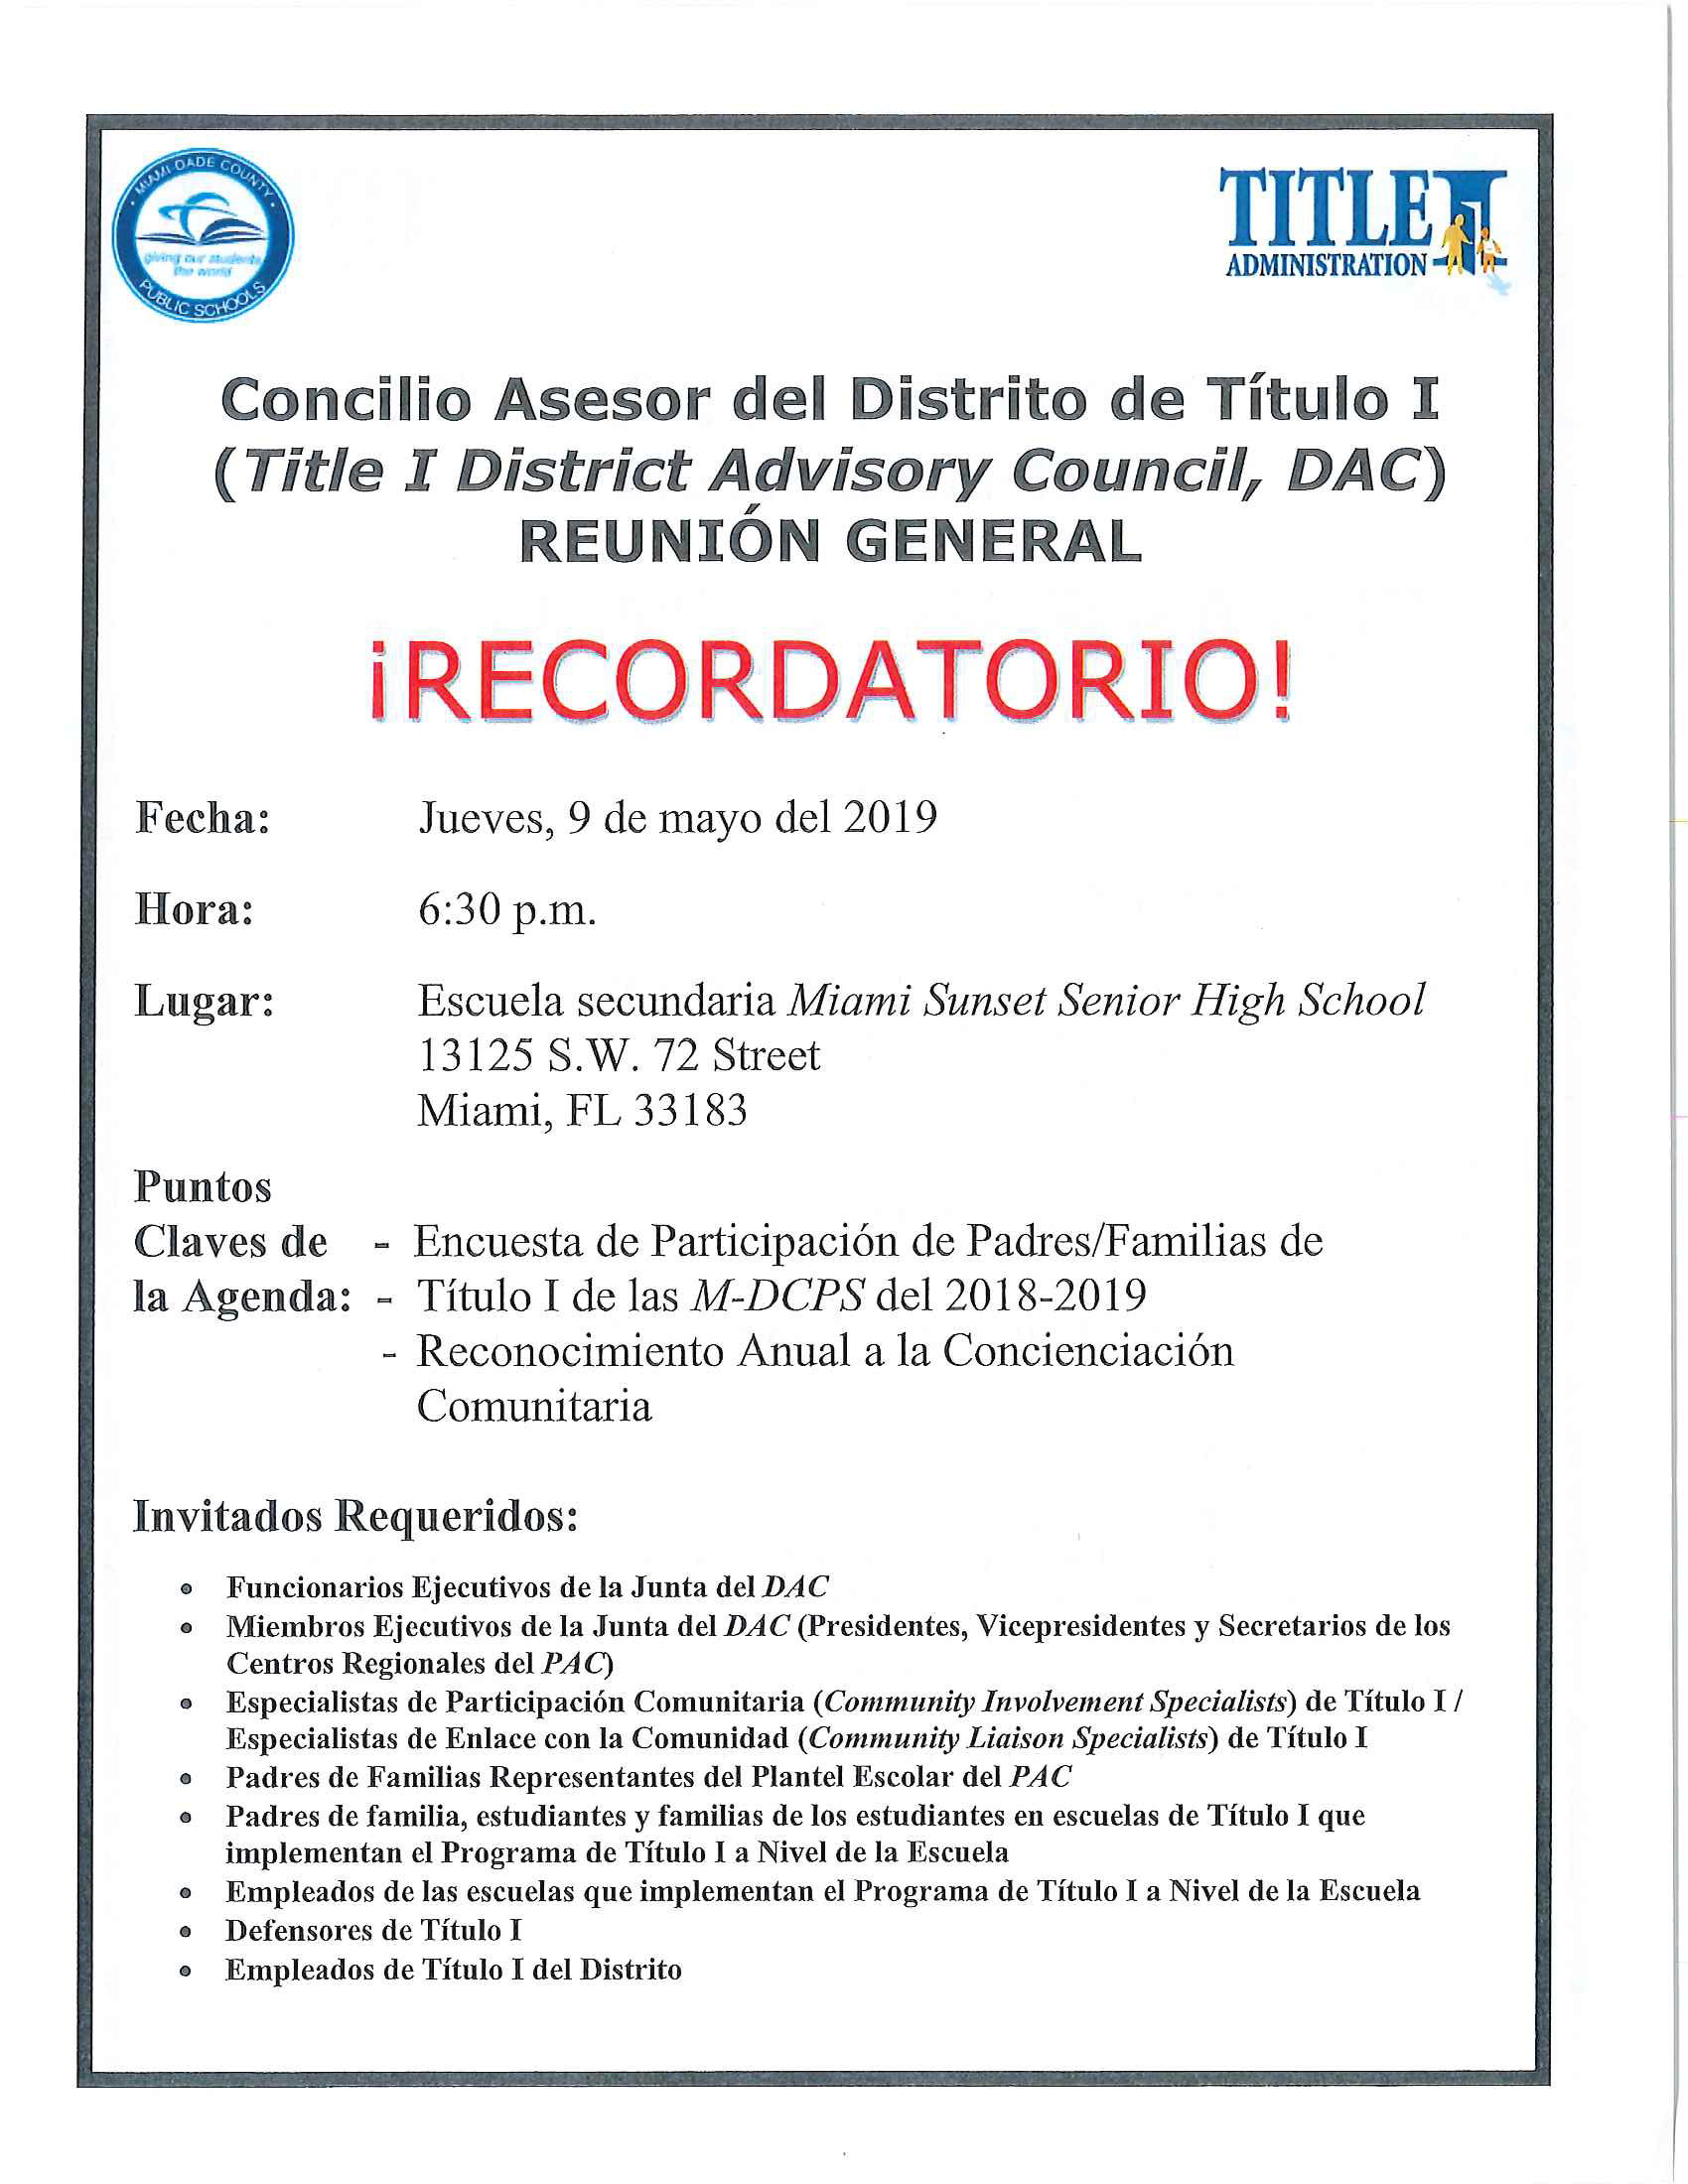 Title I DAC Meeting 5.9.19 Spanish